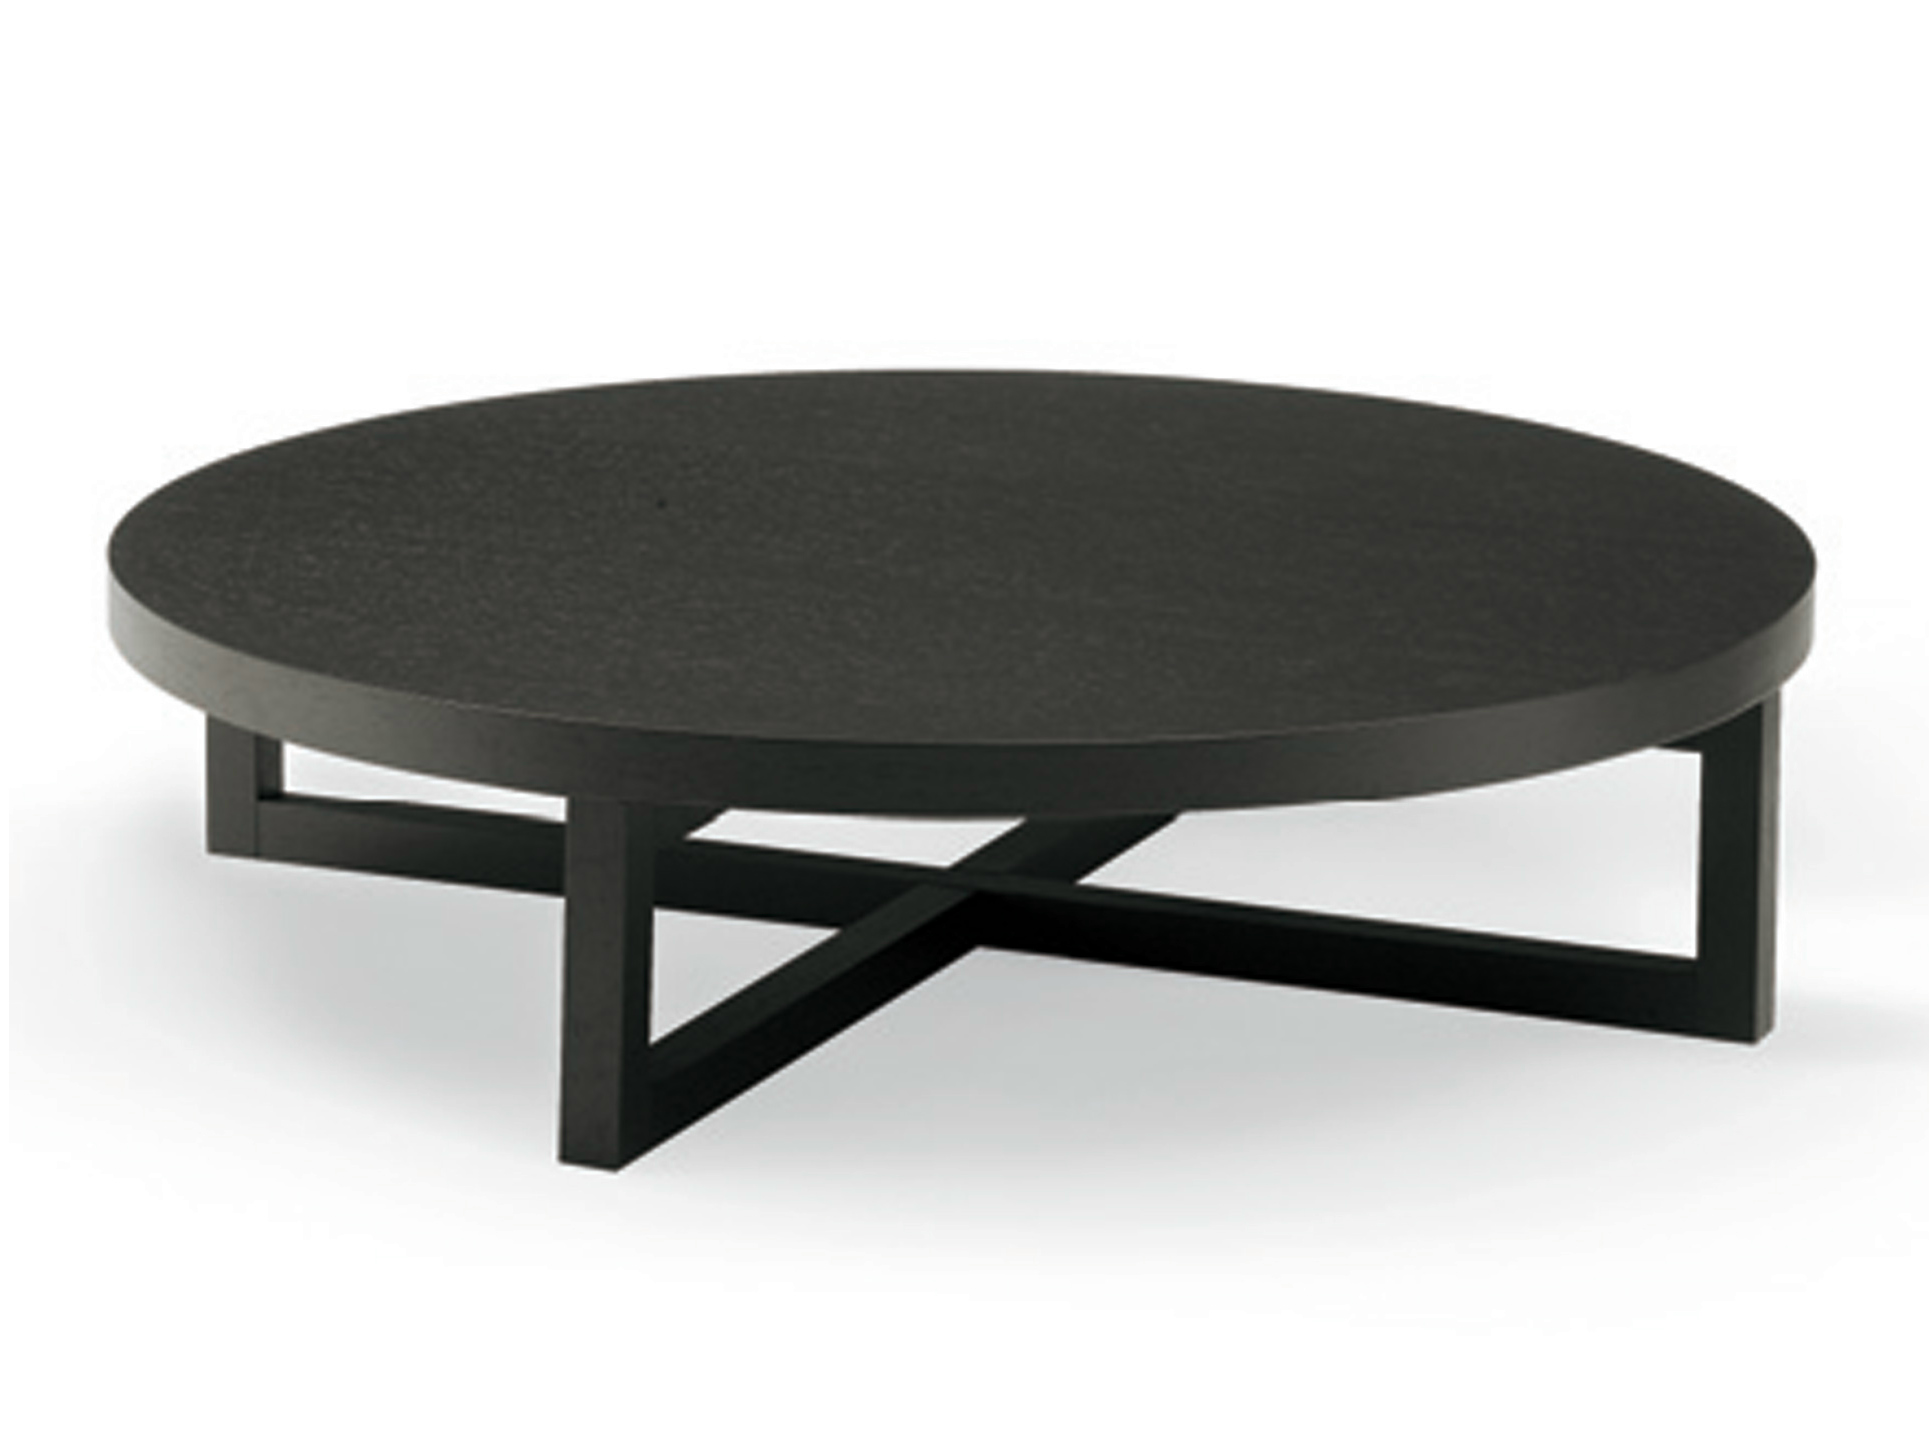 LOW ROUND WOODEN COFFEE TABLE YARD BY POLIFORM | DESIGN ...